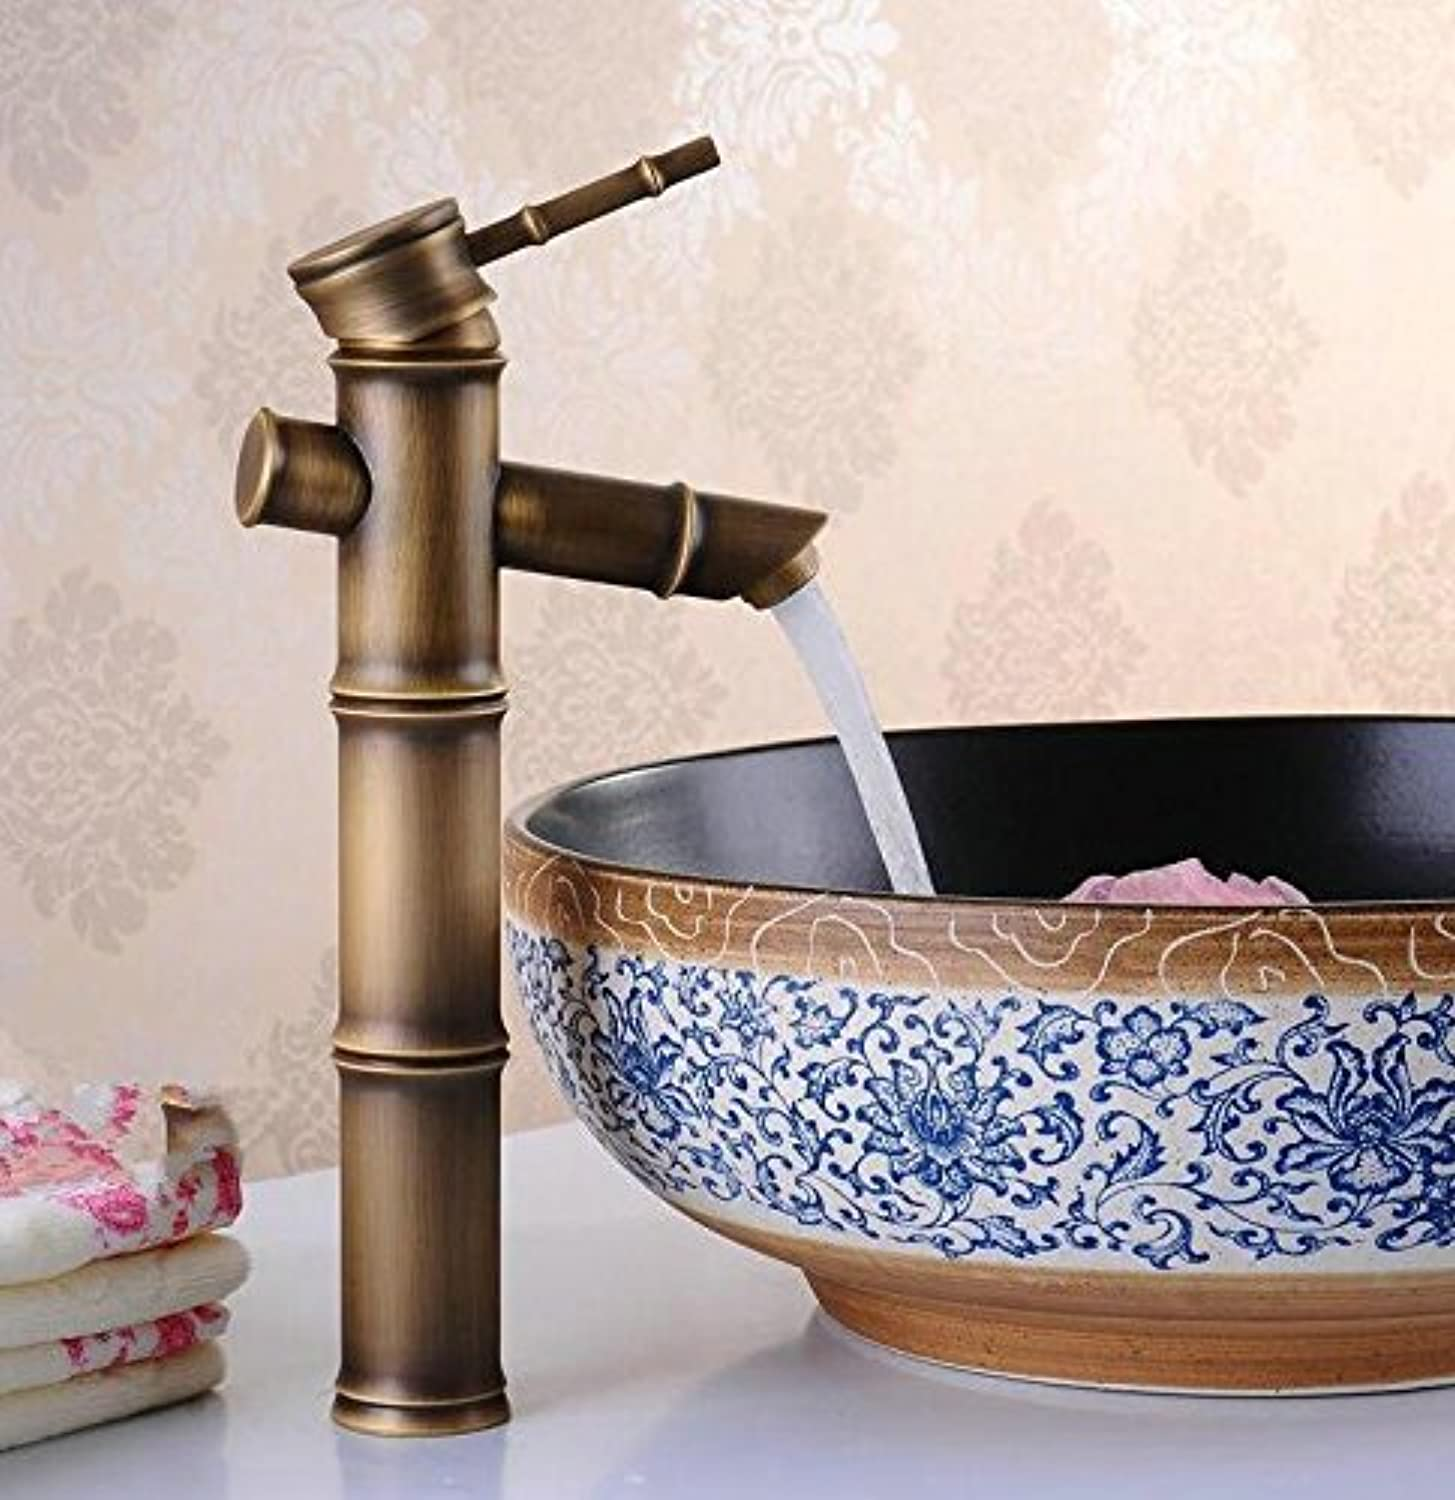 Retro Deluxe FaucetingFree Shipping Bathroom Bamboo Faucet Brass Basin Sink Faucet Tolet Deck Mounted Single Handle Mixer Tap Crane,Brass,Antique 12 Inch